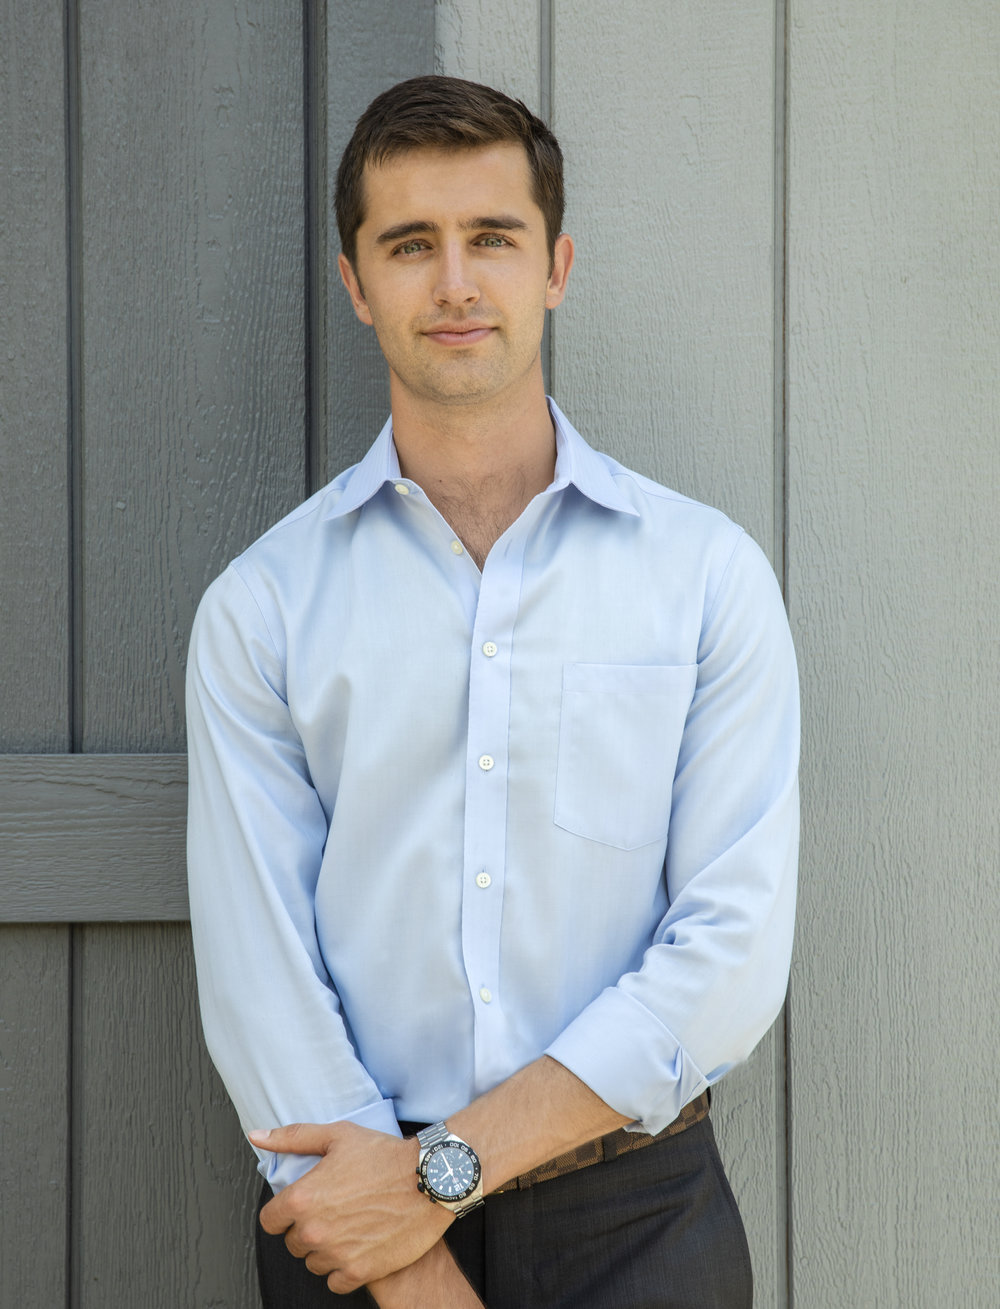 Austin Charles - Founder: Mindfulness in Law Society- Student Division@austincharles08